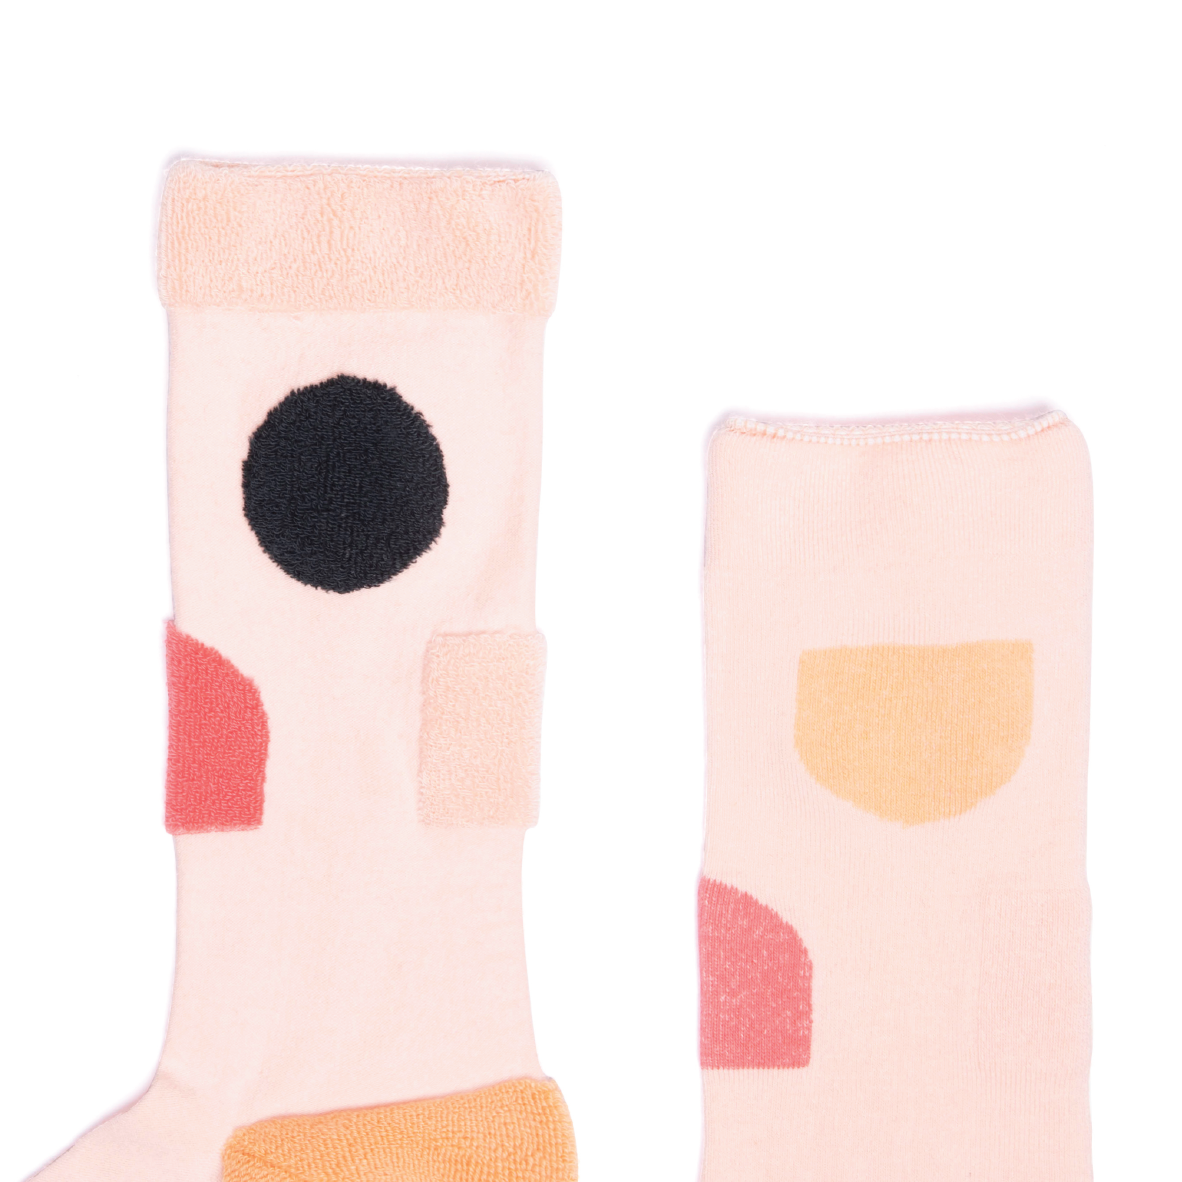 MY INNER BEAUTY: JIWA | Pink & Orange | Reversible Patterned Socks